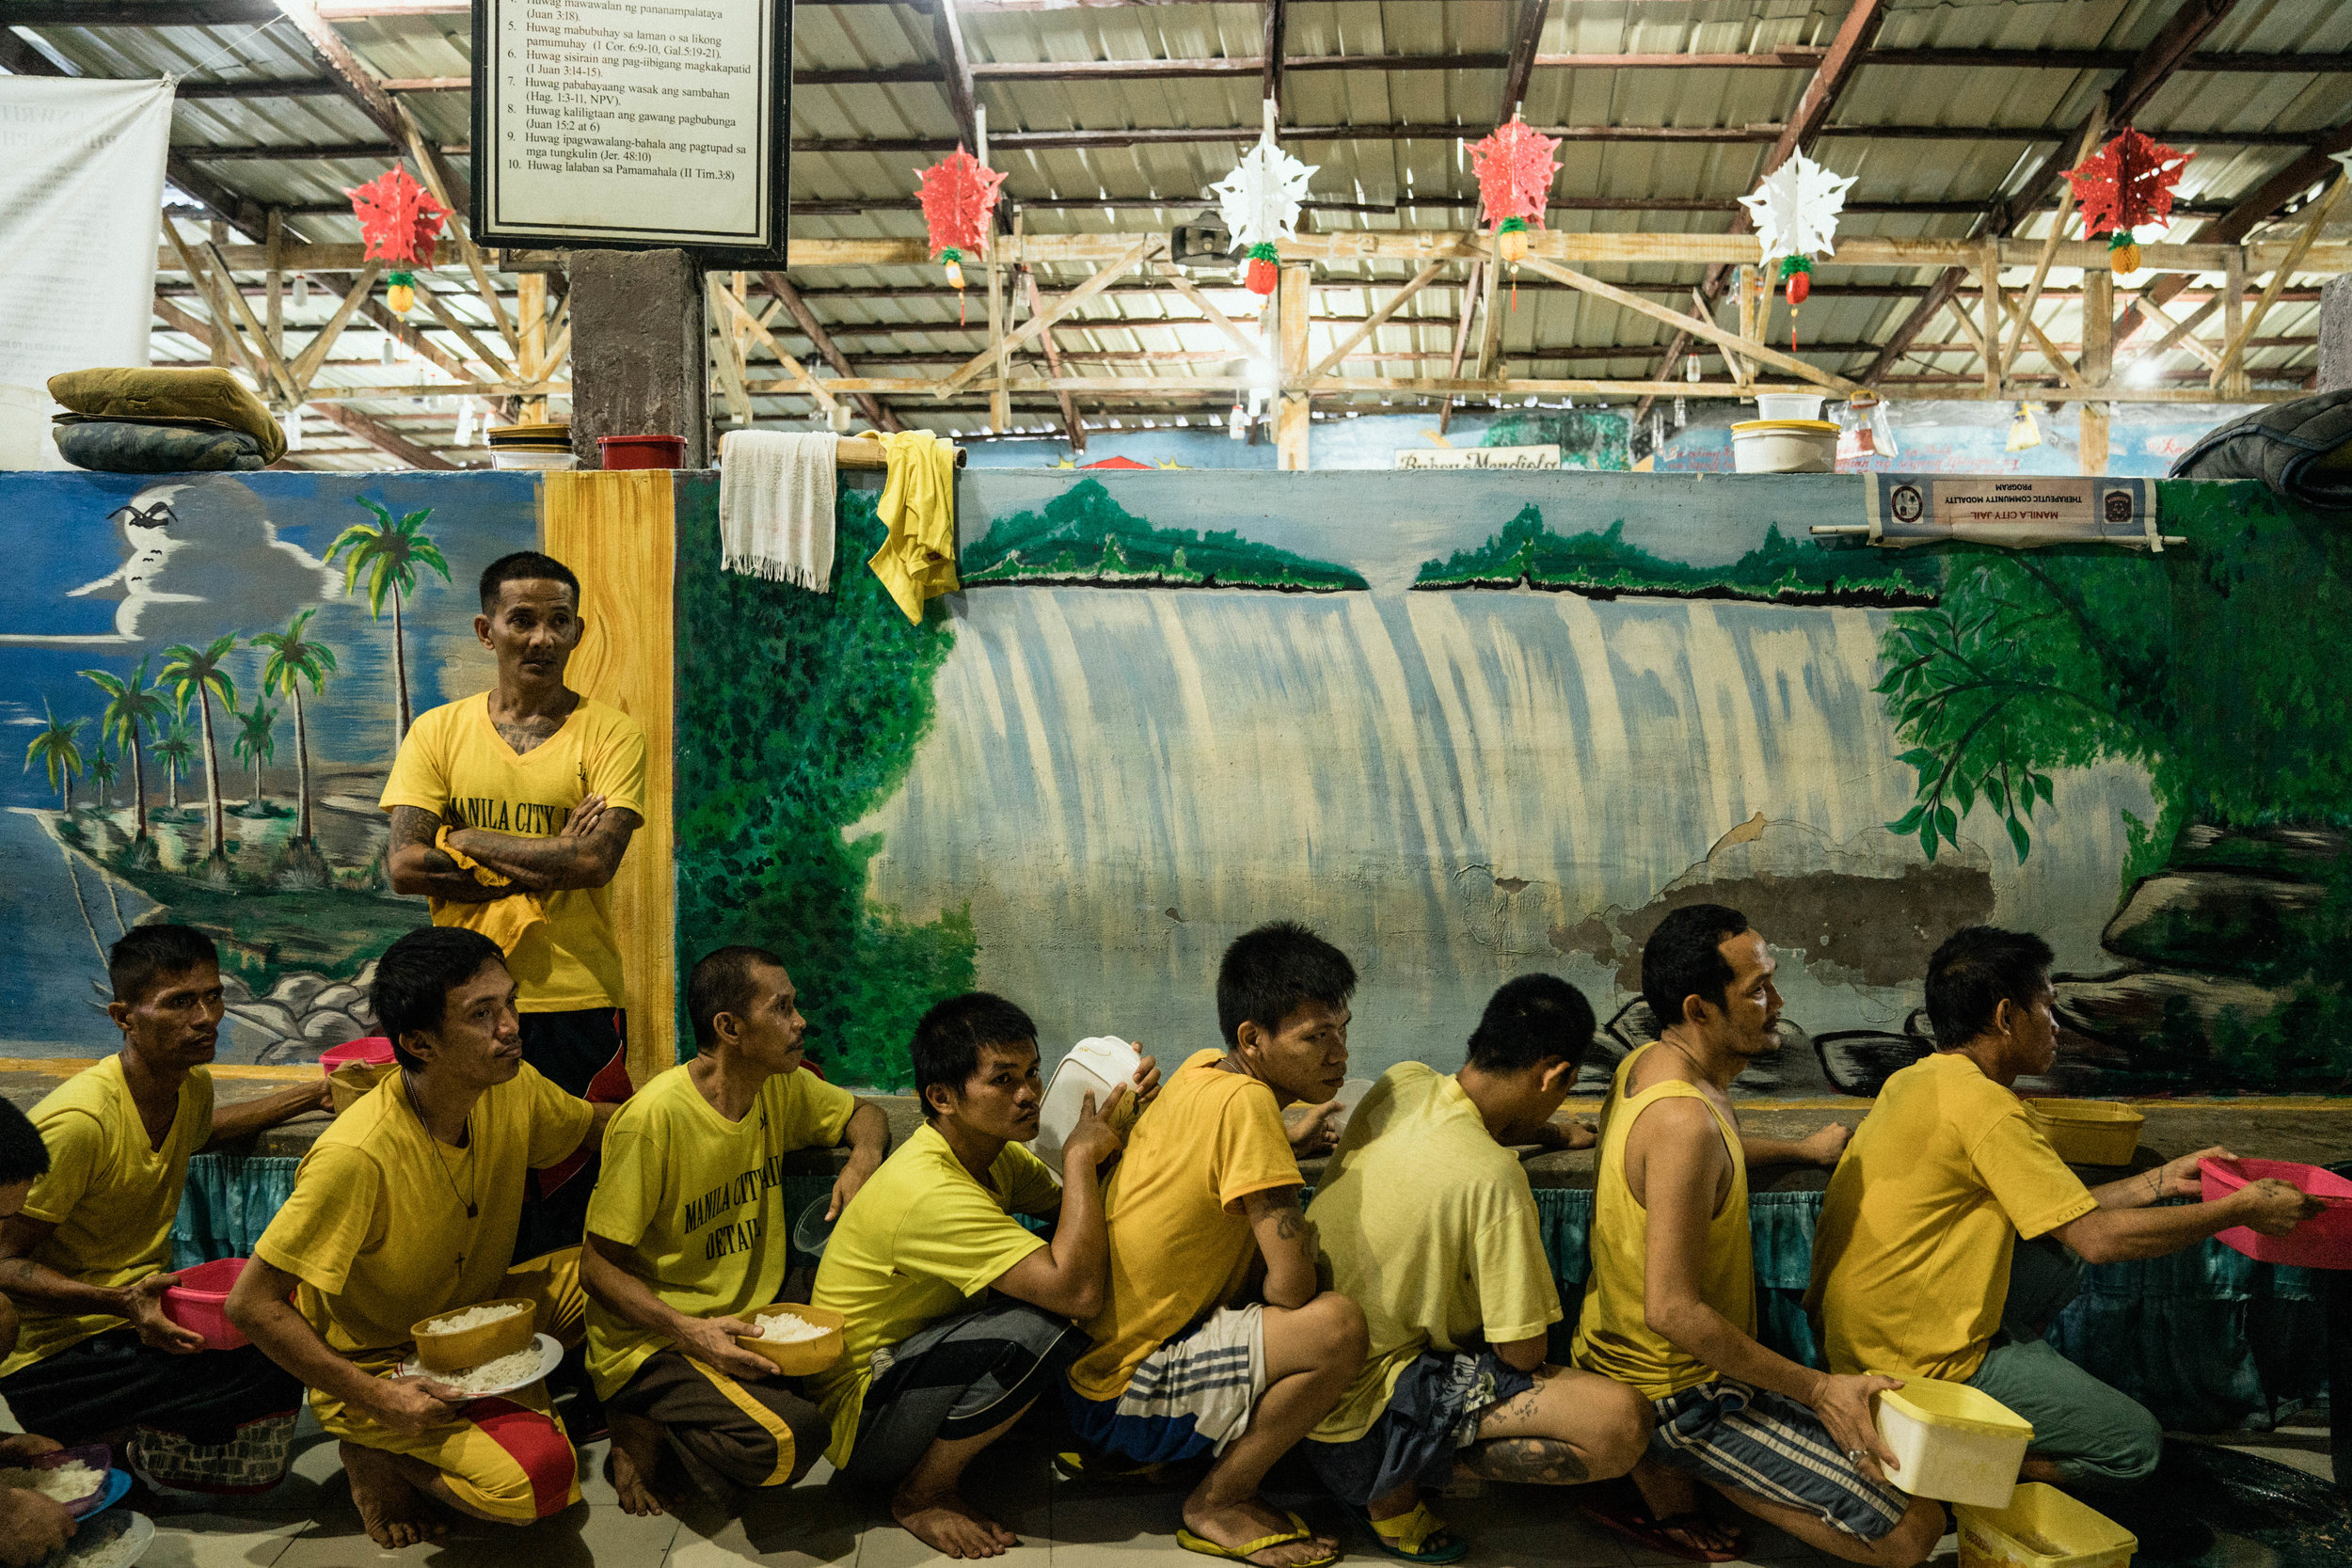 Men line up for food in the Manila City Jail in Manila, Philippines on October 31, 2018. In the Philippines, men with pending cases spend months, sometimes years, in overcrowded cells waiting to be charged, sentenced, or tried.